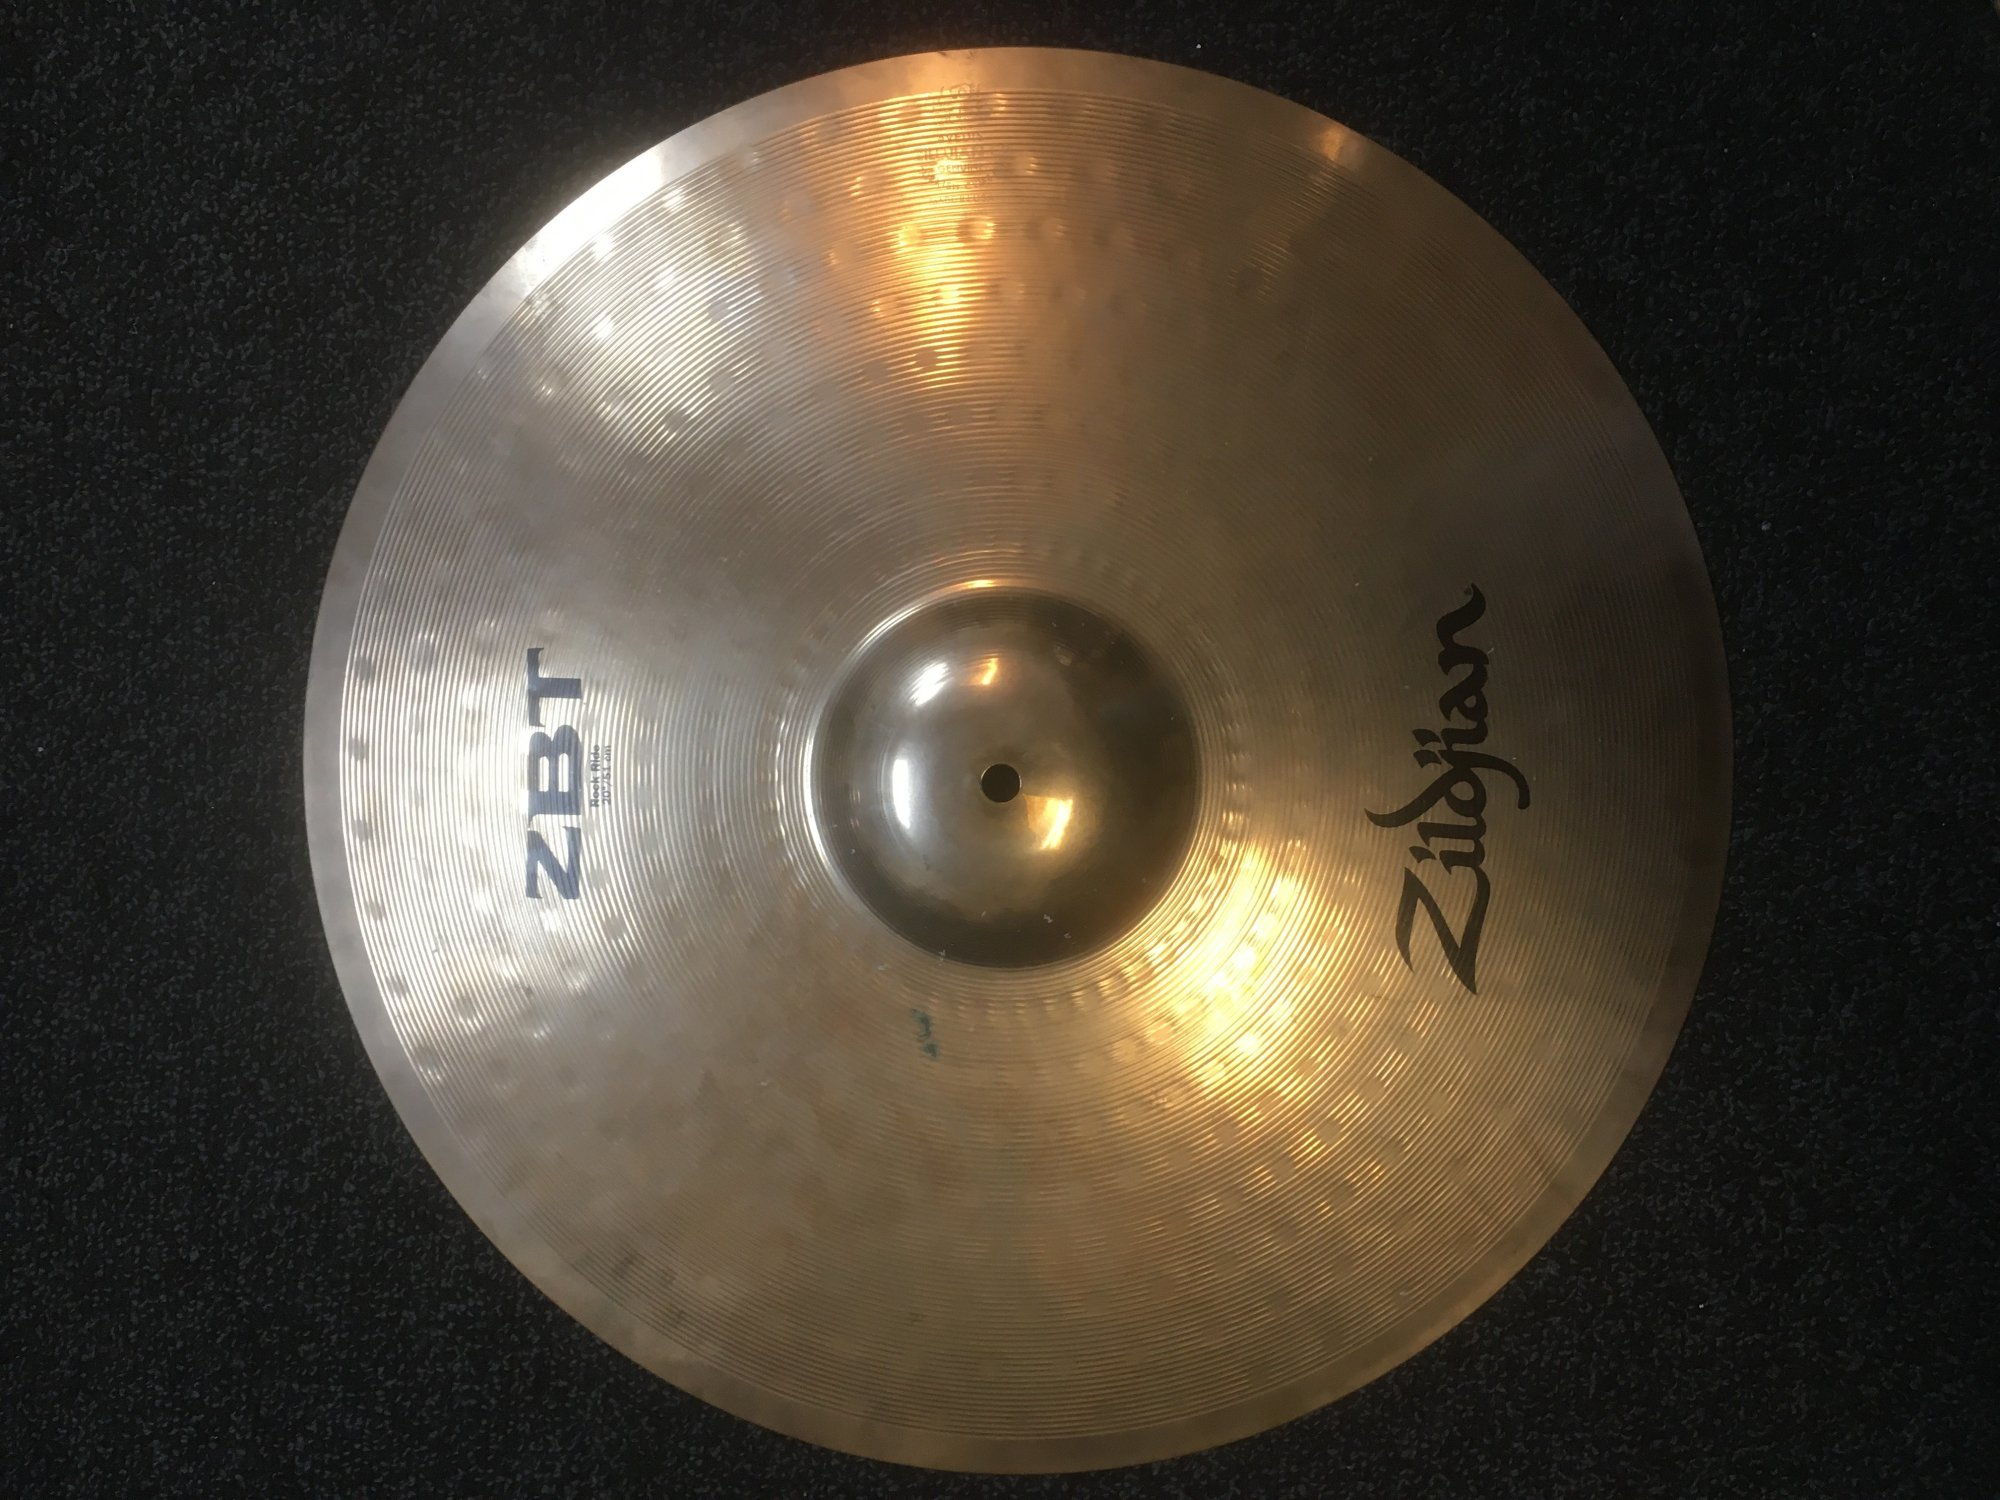 Zildjian ZBT20RR 20 ZBT Rock Ride Cymbal - USED